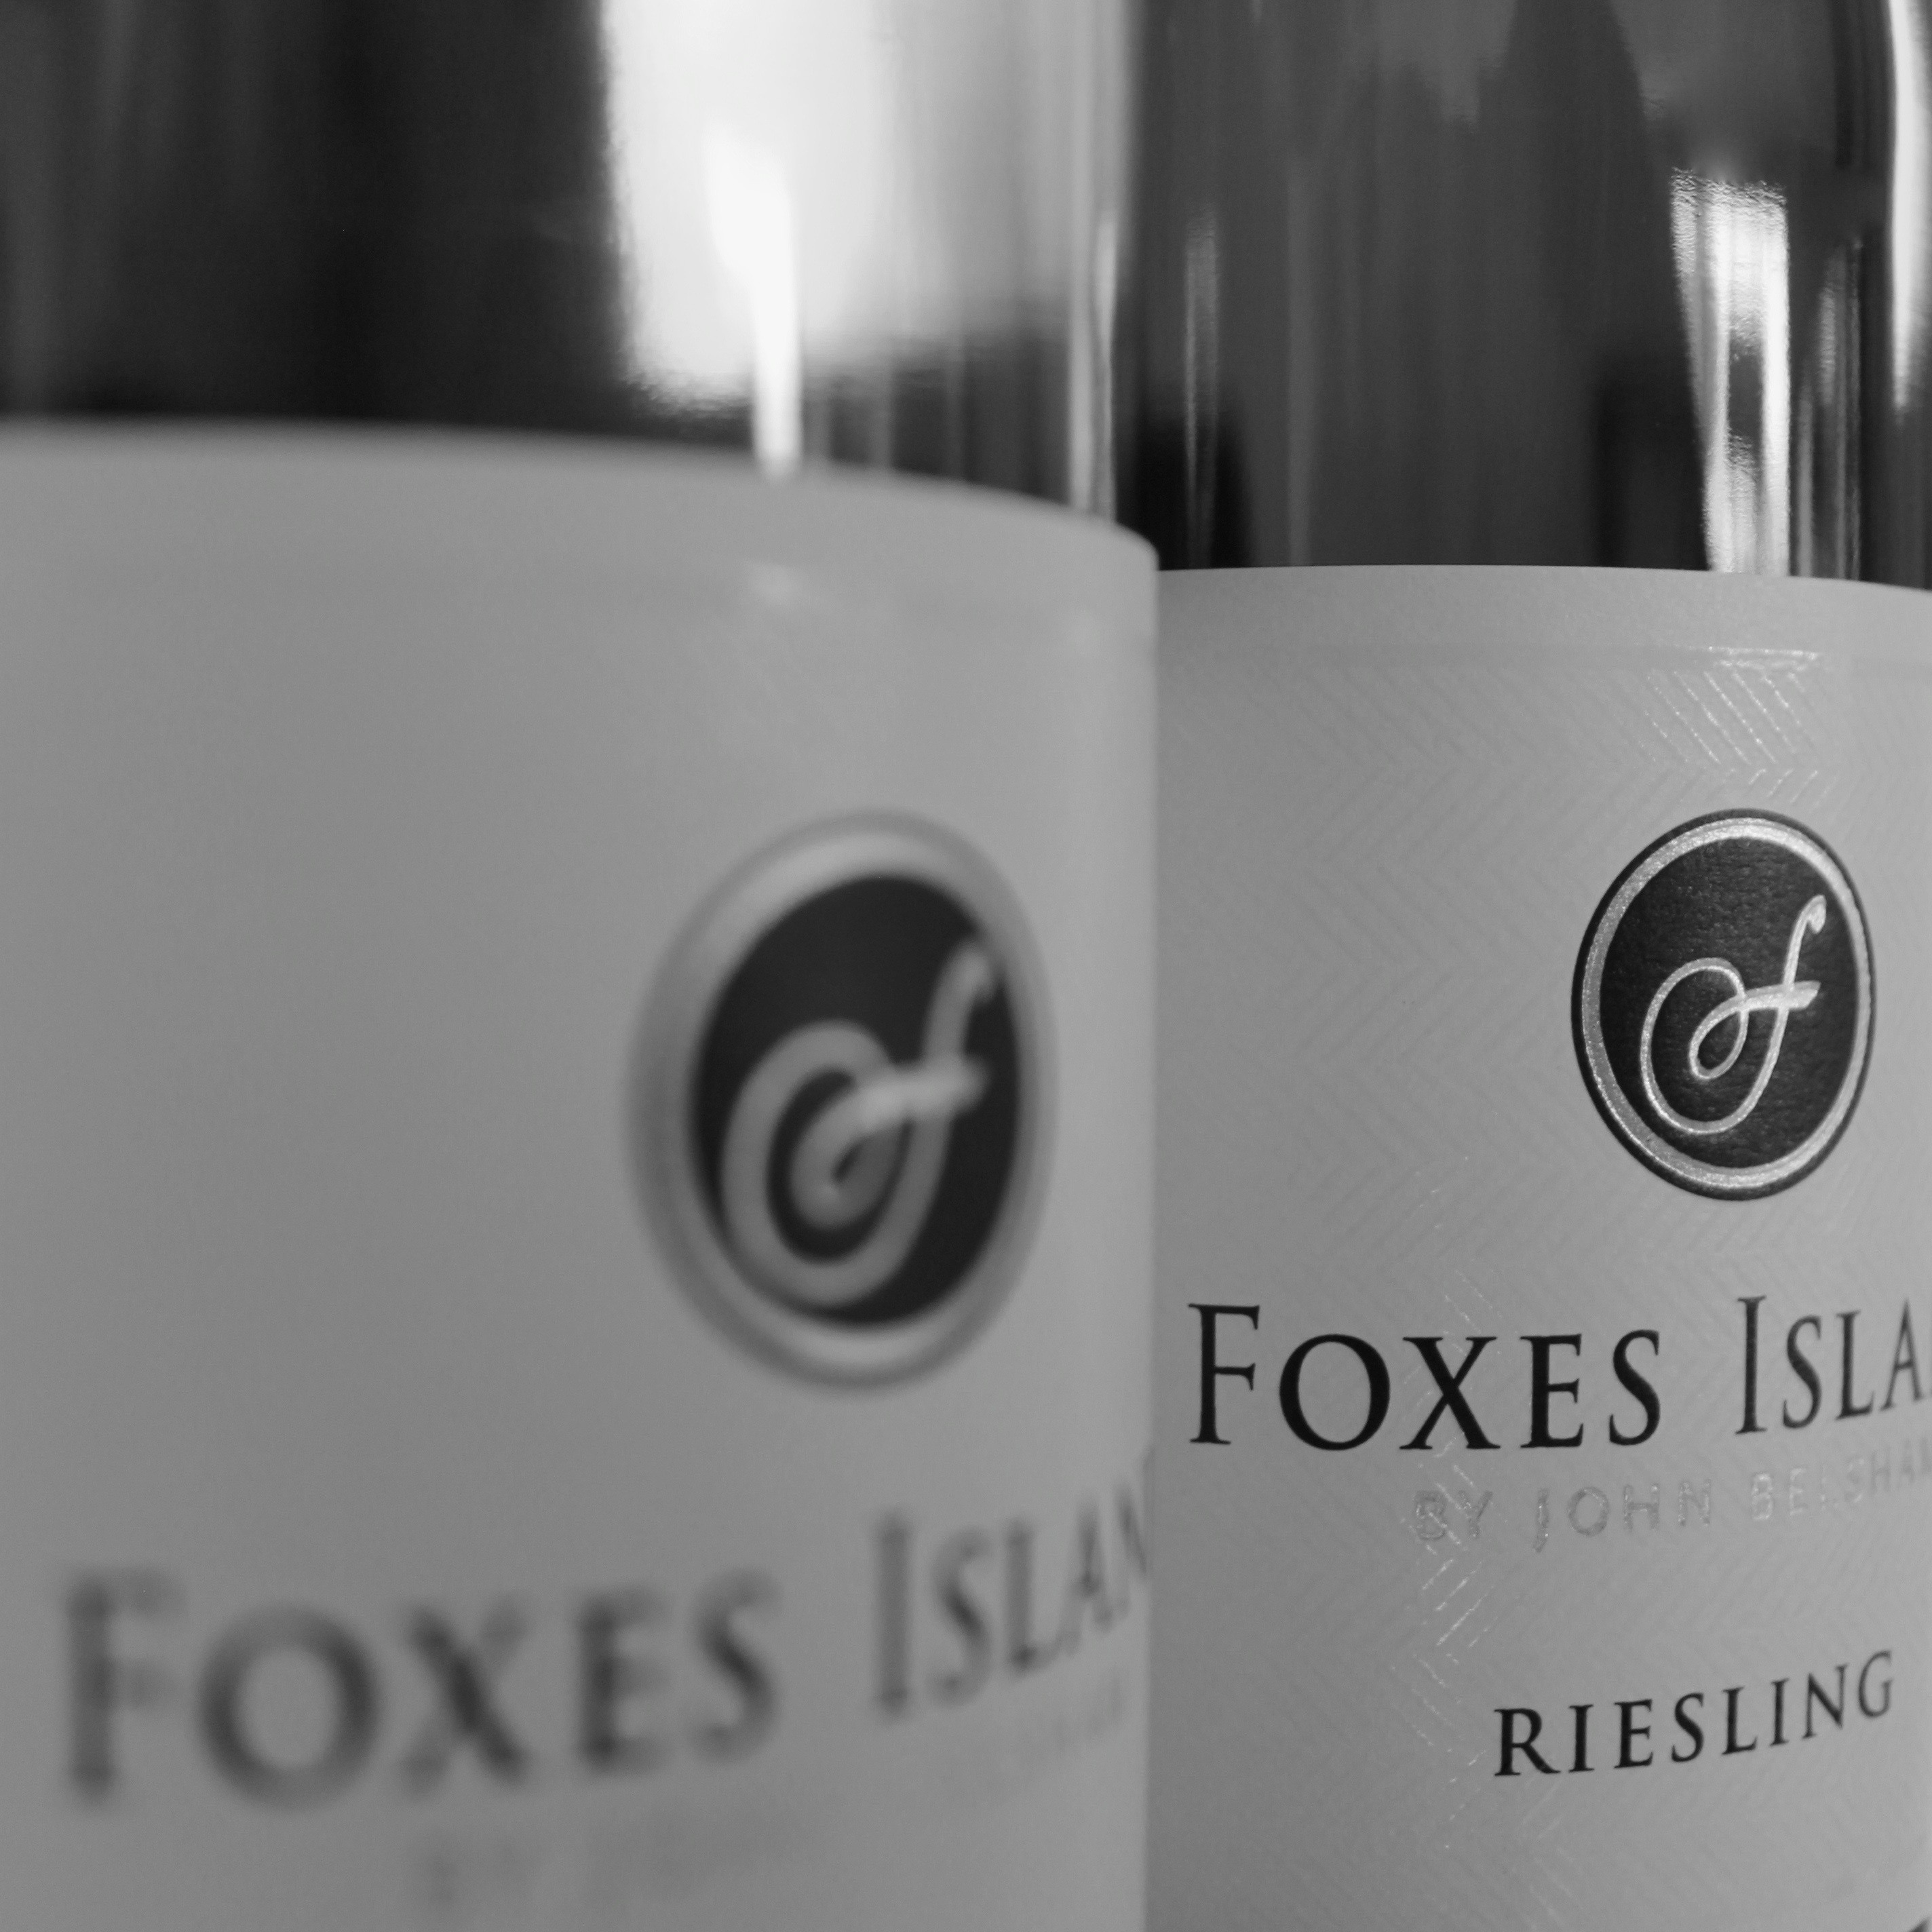 Foxes Island Riesling, Belsham Awatere Estate